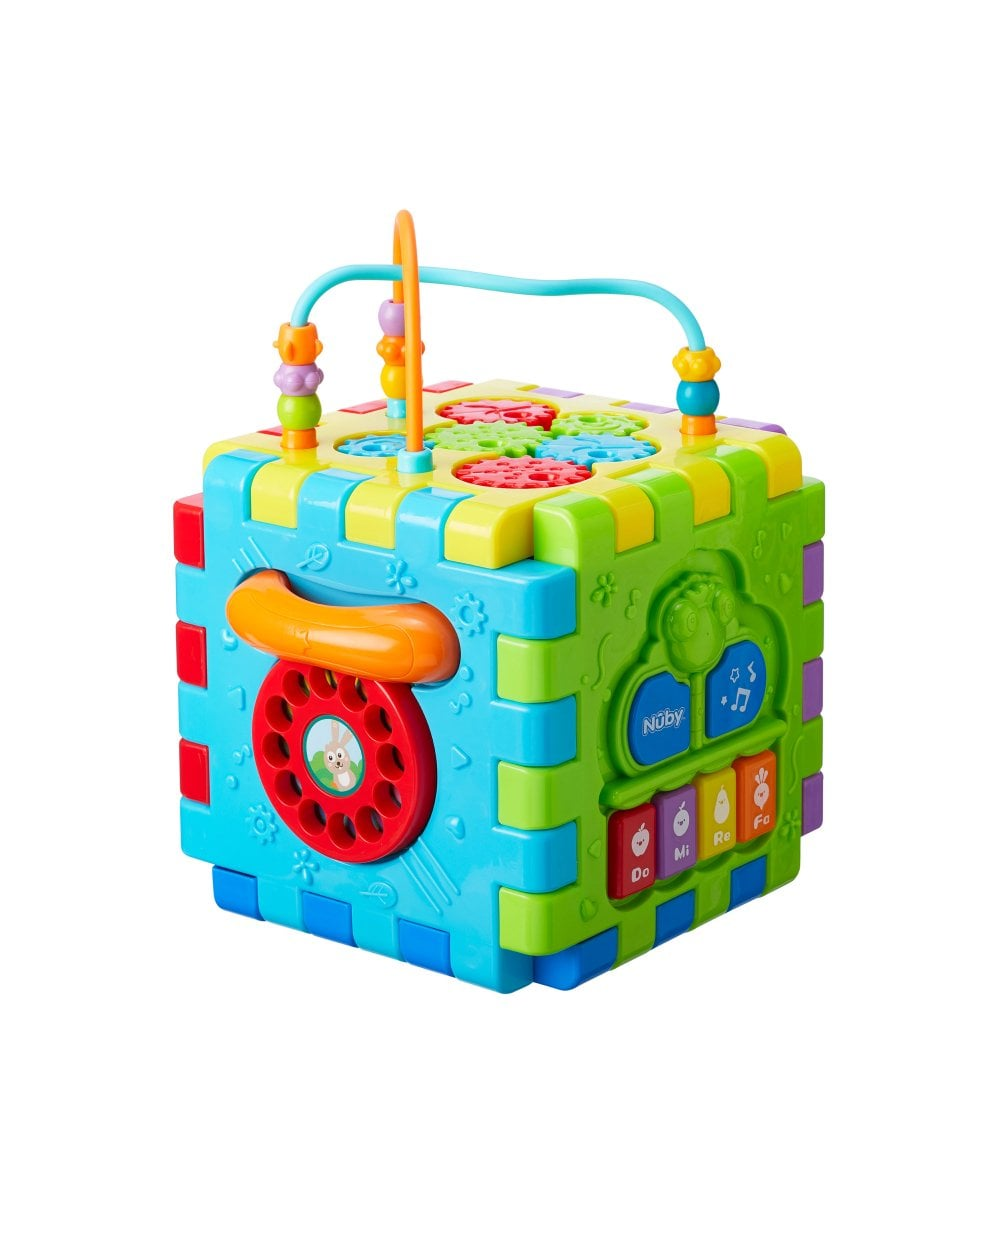 Nuby Electronic Activity Cube